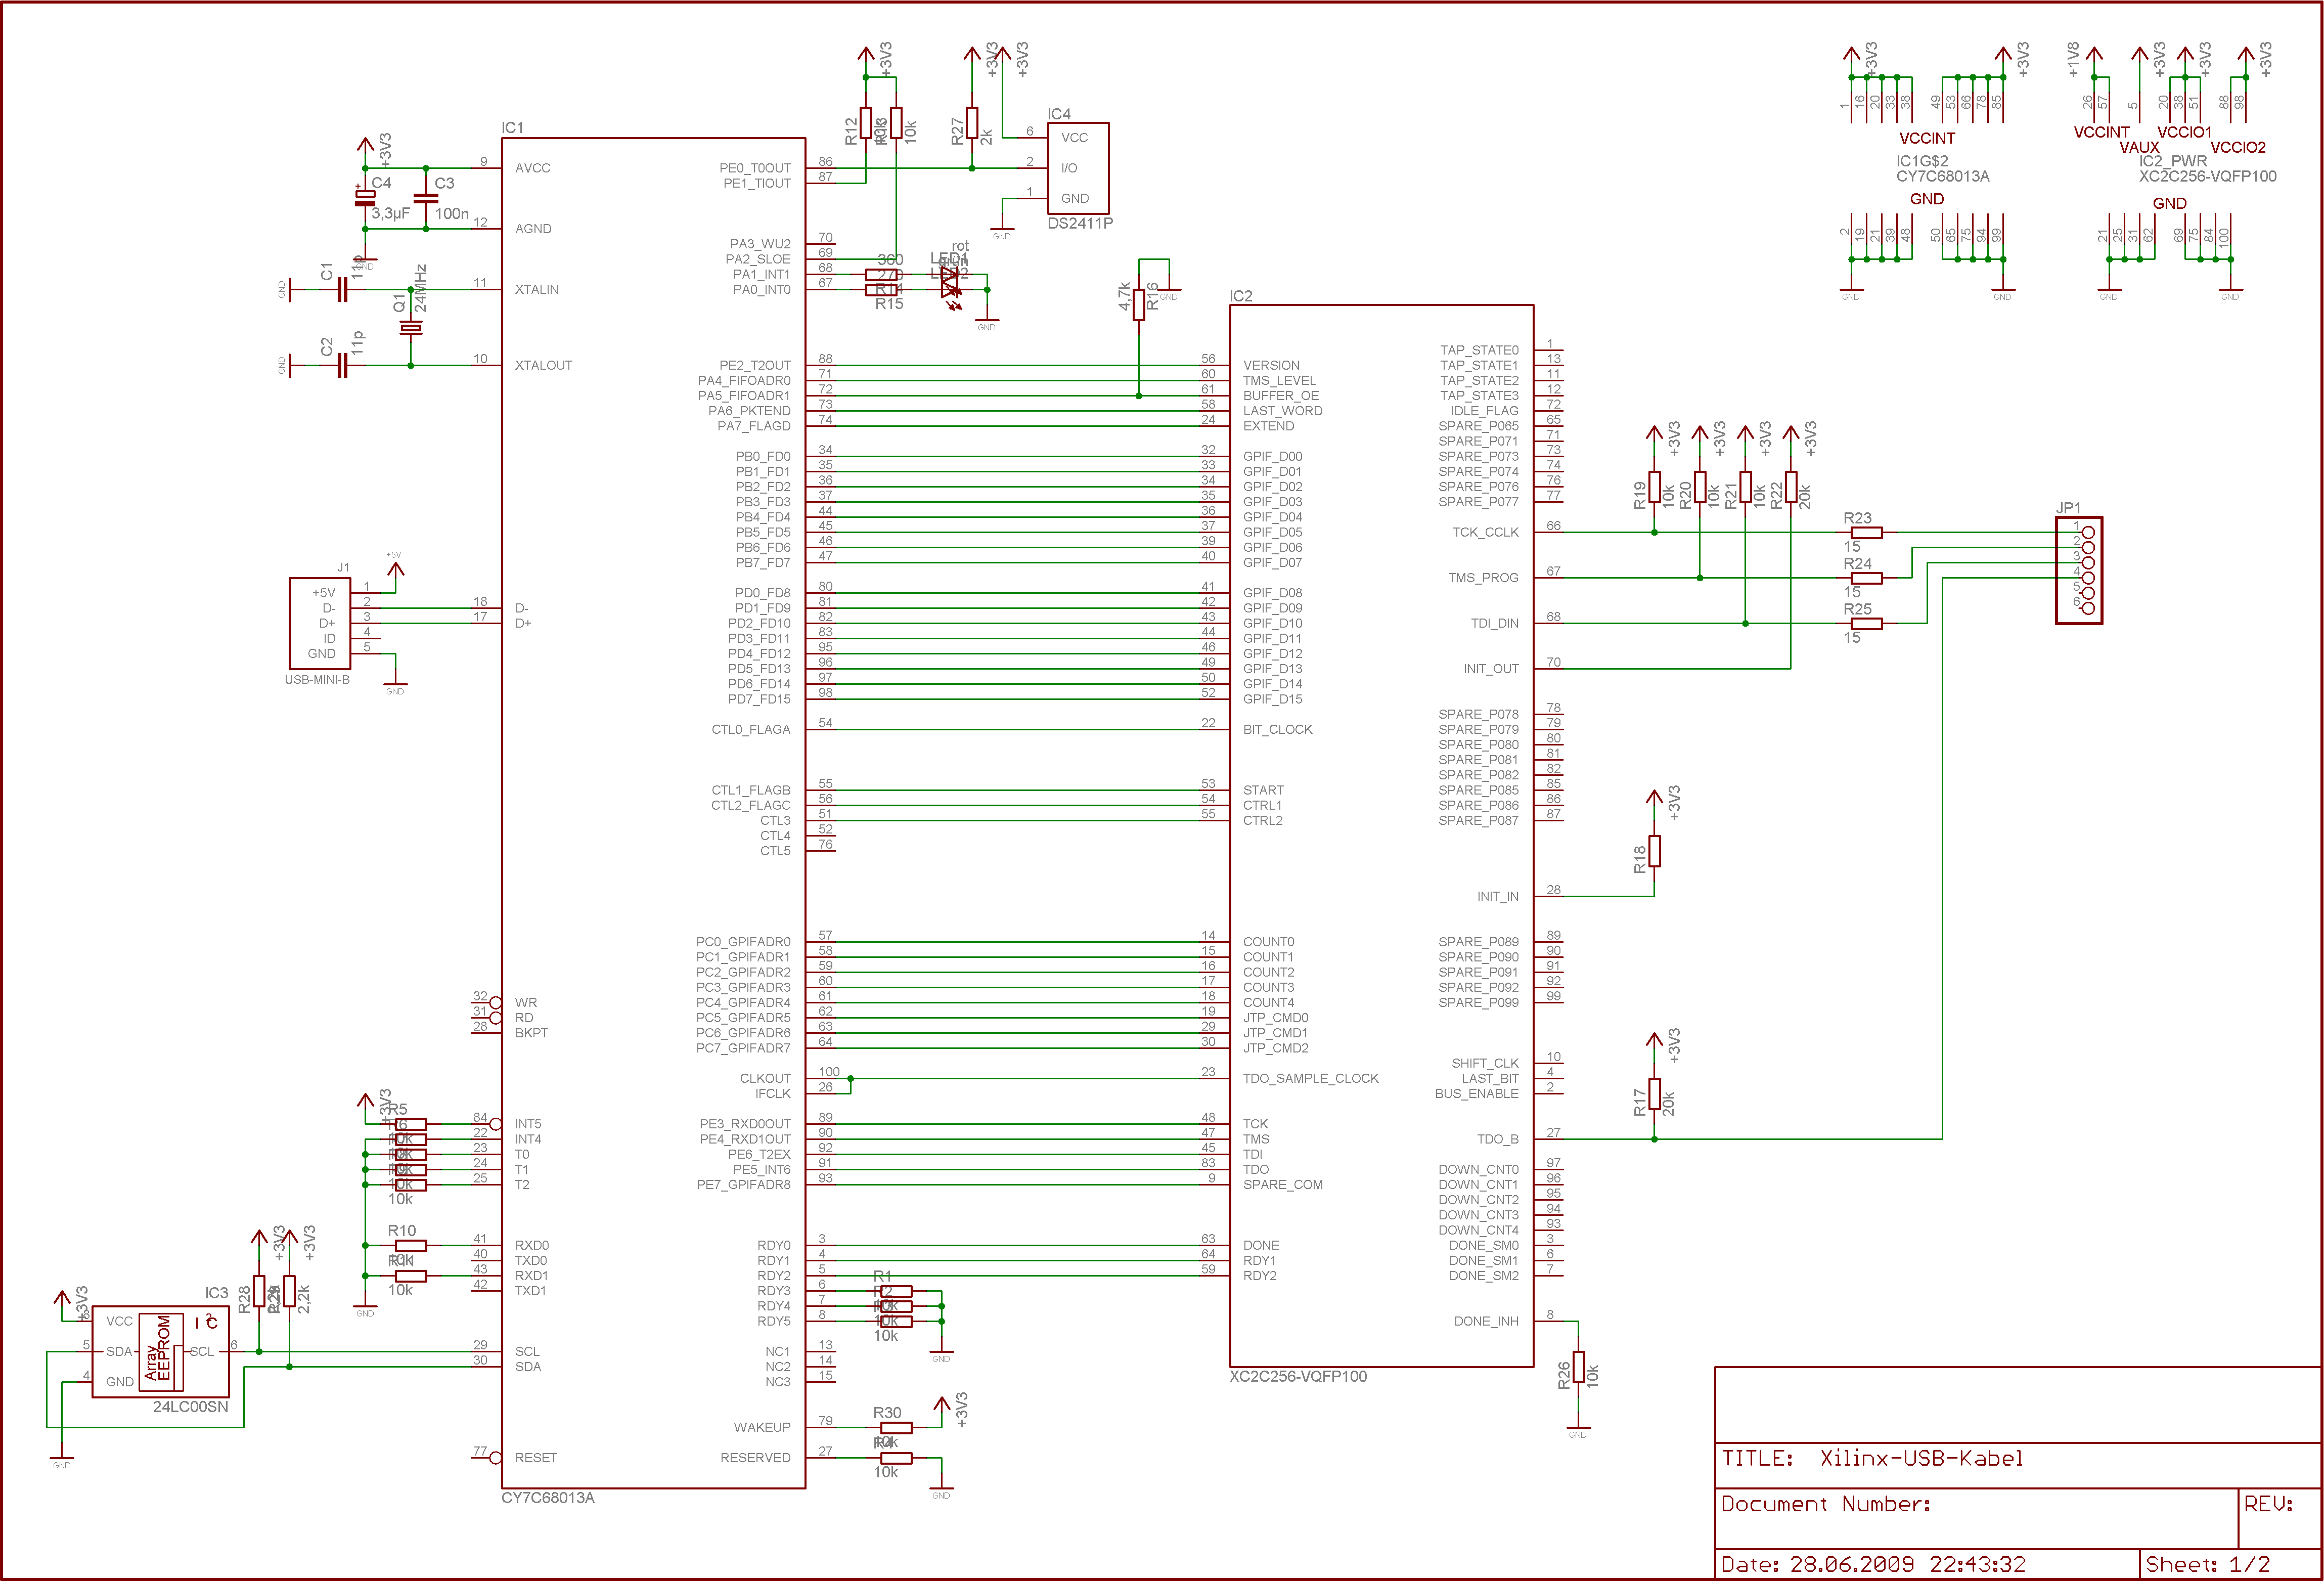 xilinx usb schematic jetzt verf gbar mikrocontroller net rh mikrocontroller net Coax Cable Caddy I2C Cable Smart